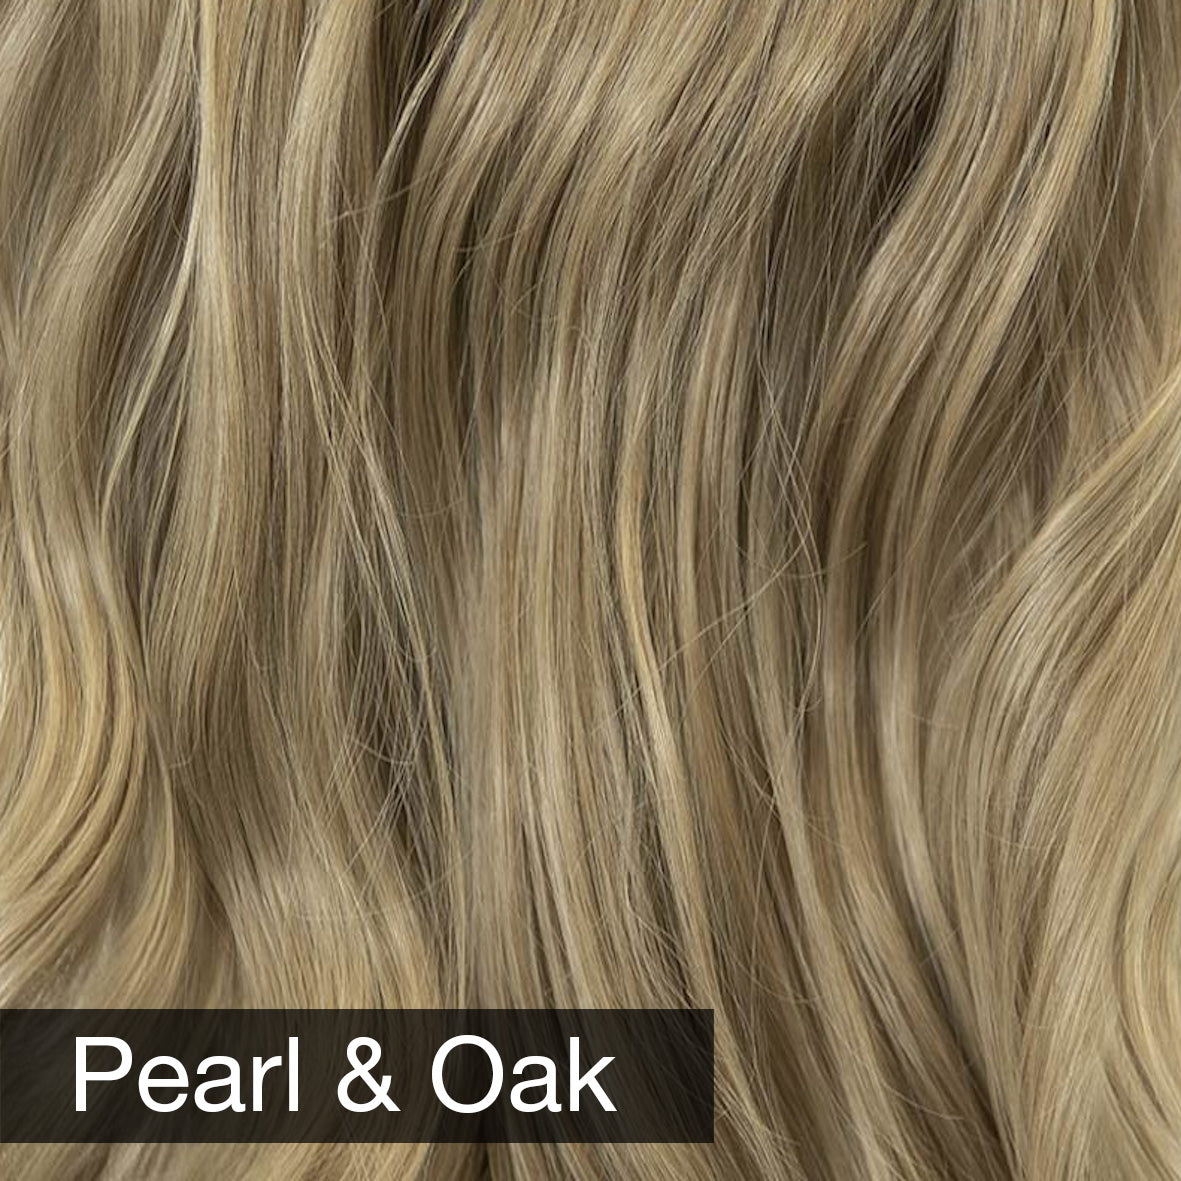 Blonde Ombre Hair Extensions	 (4490345971792)